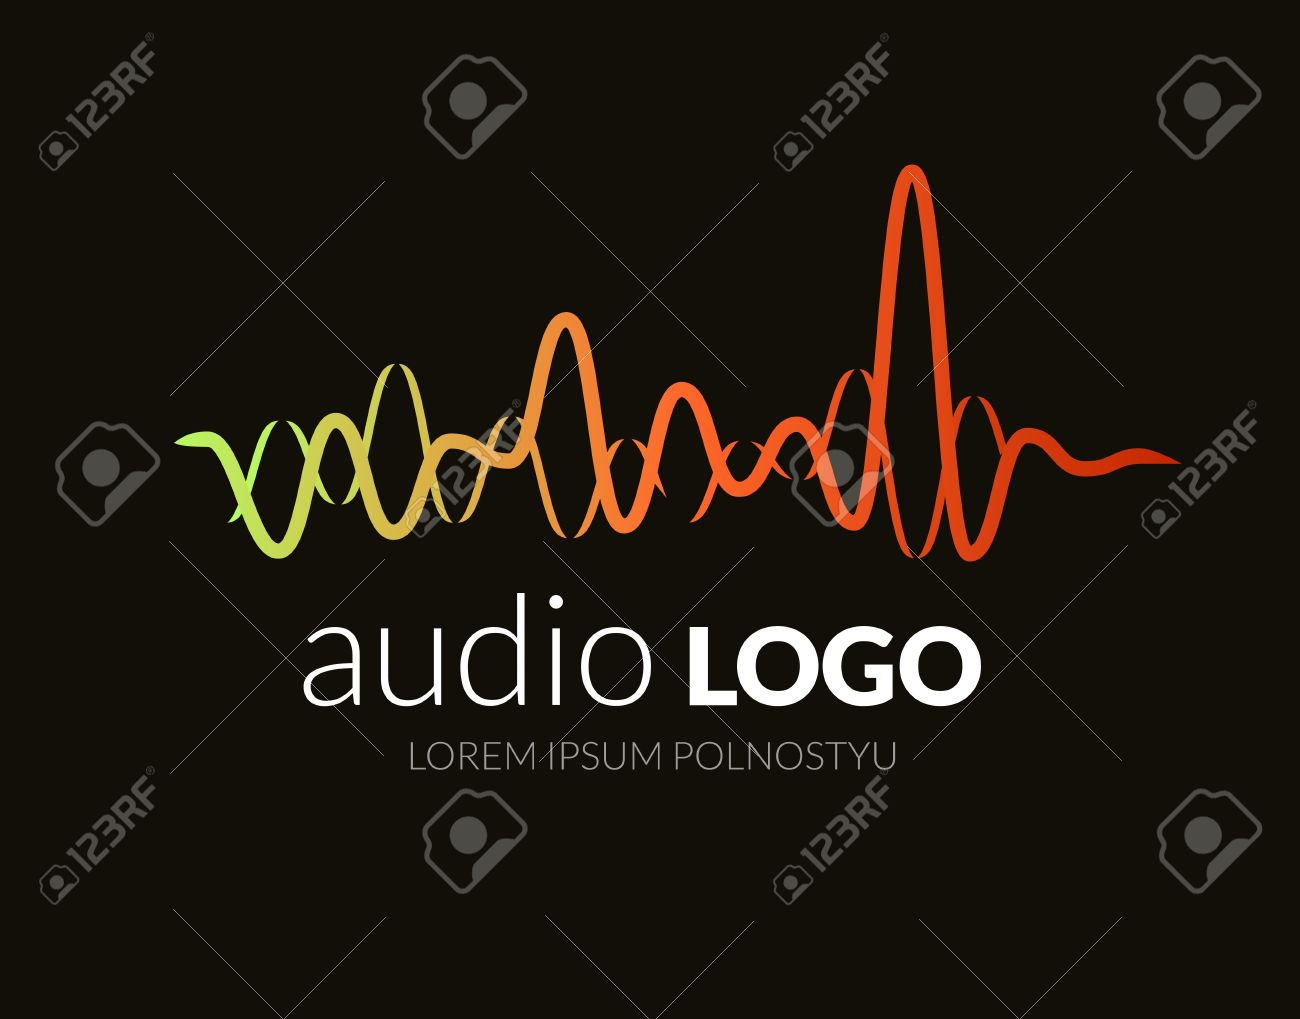 logo sound wave studio music dj audio system brand branding royalty free cliparts vectors and stock illustration image 57946565 logo sound wave studio music dj audio system brand branding